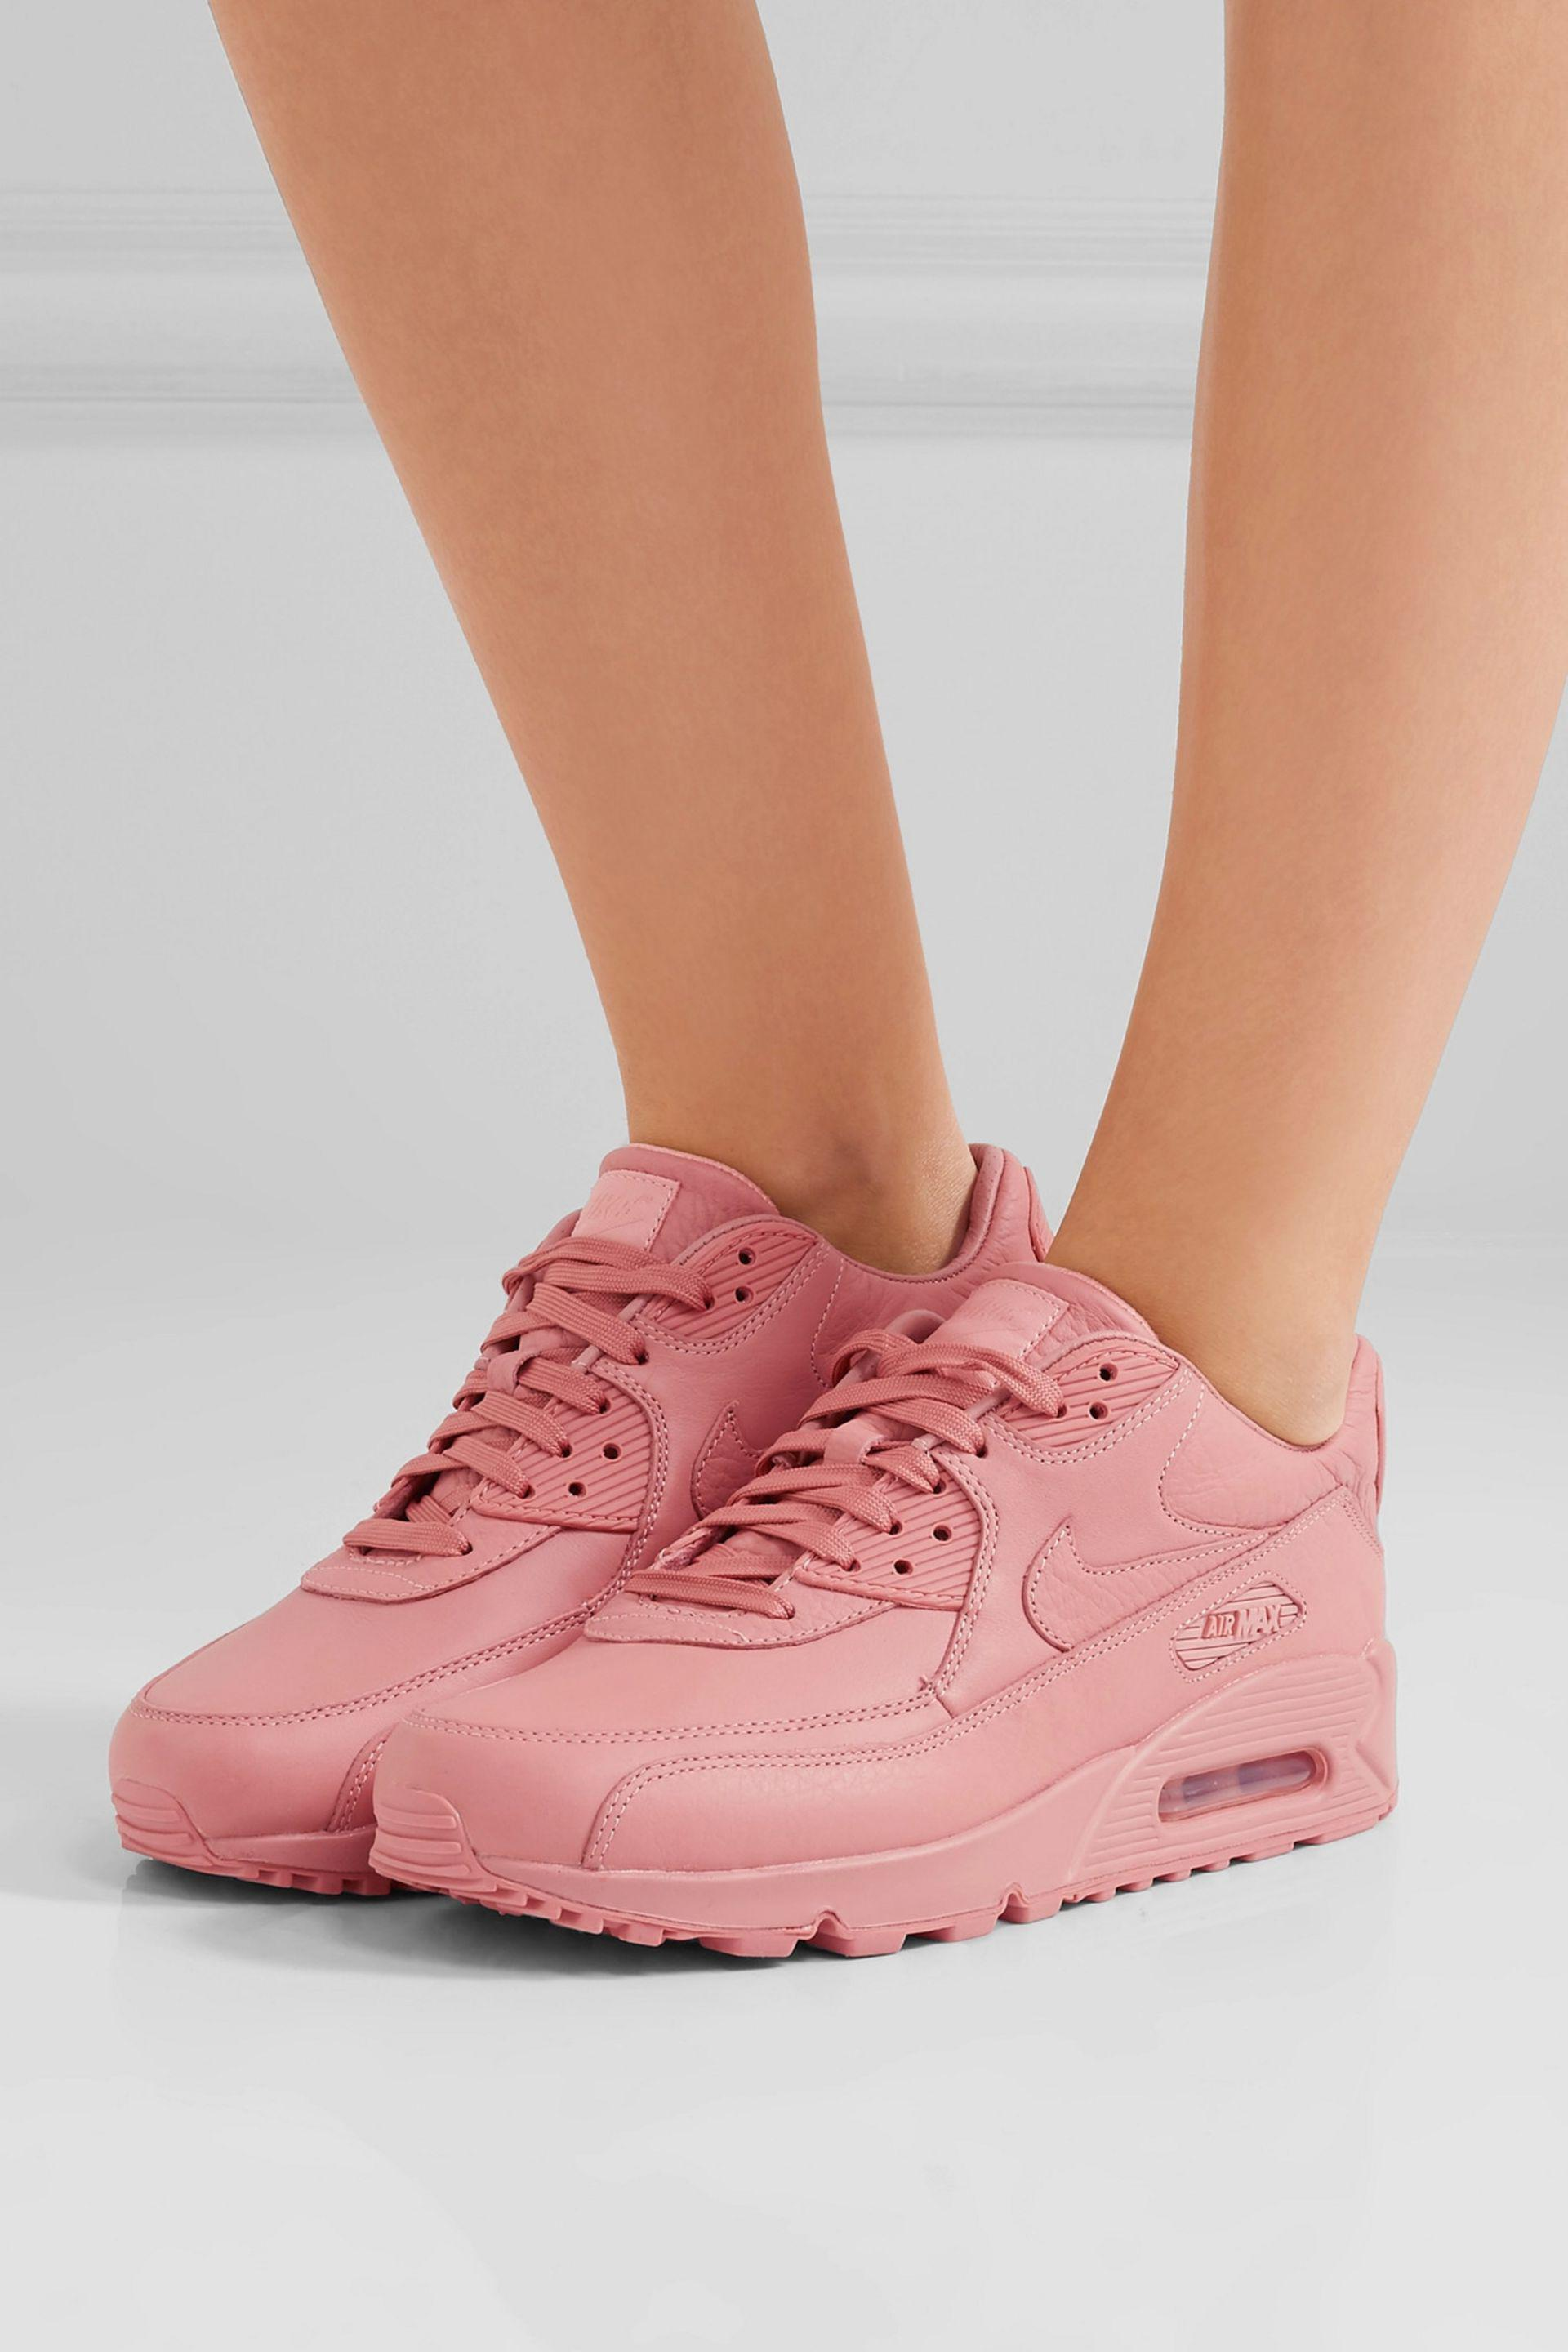 huge selection of bf2e4 9ae34 Nike Tier Zero Air Max 90 Leather Sneakers in Pink Lyst ...